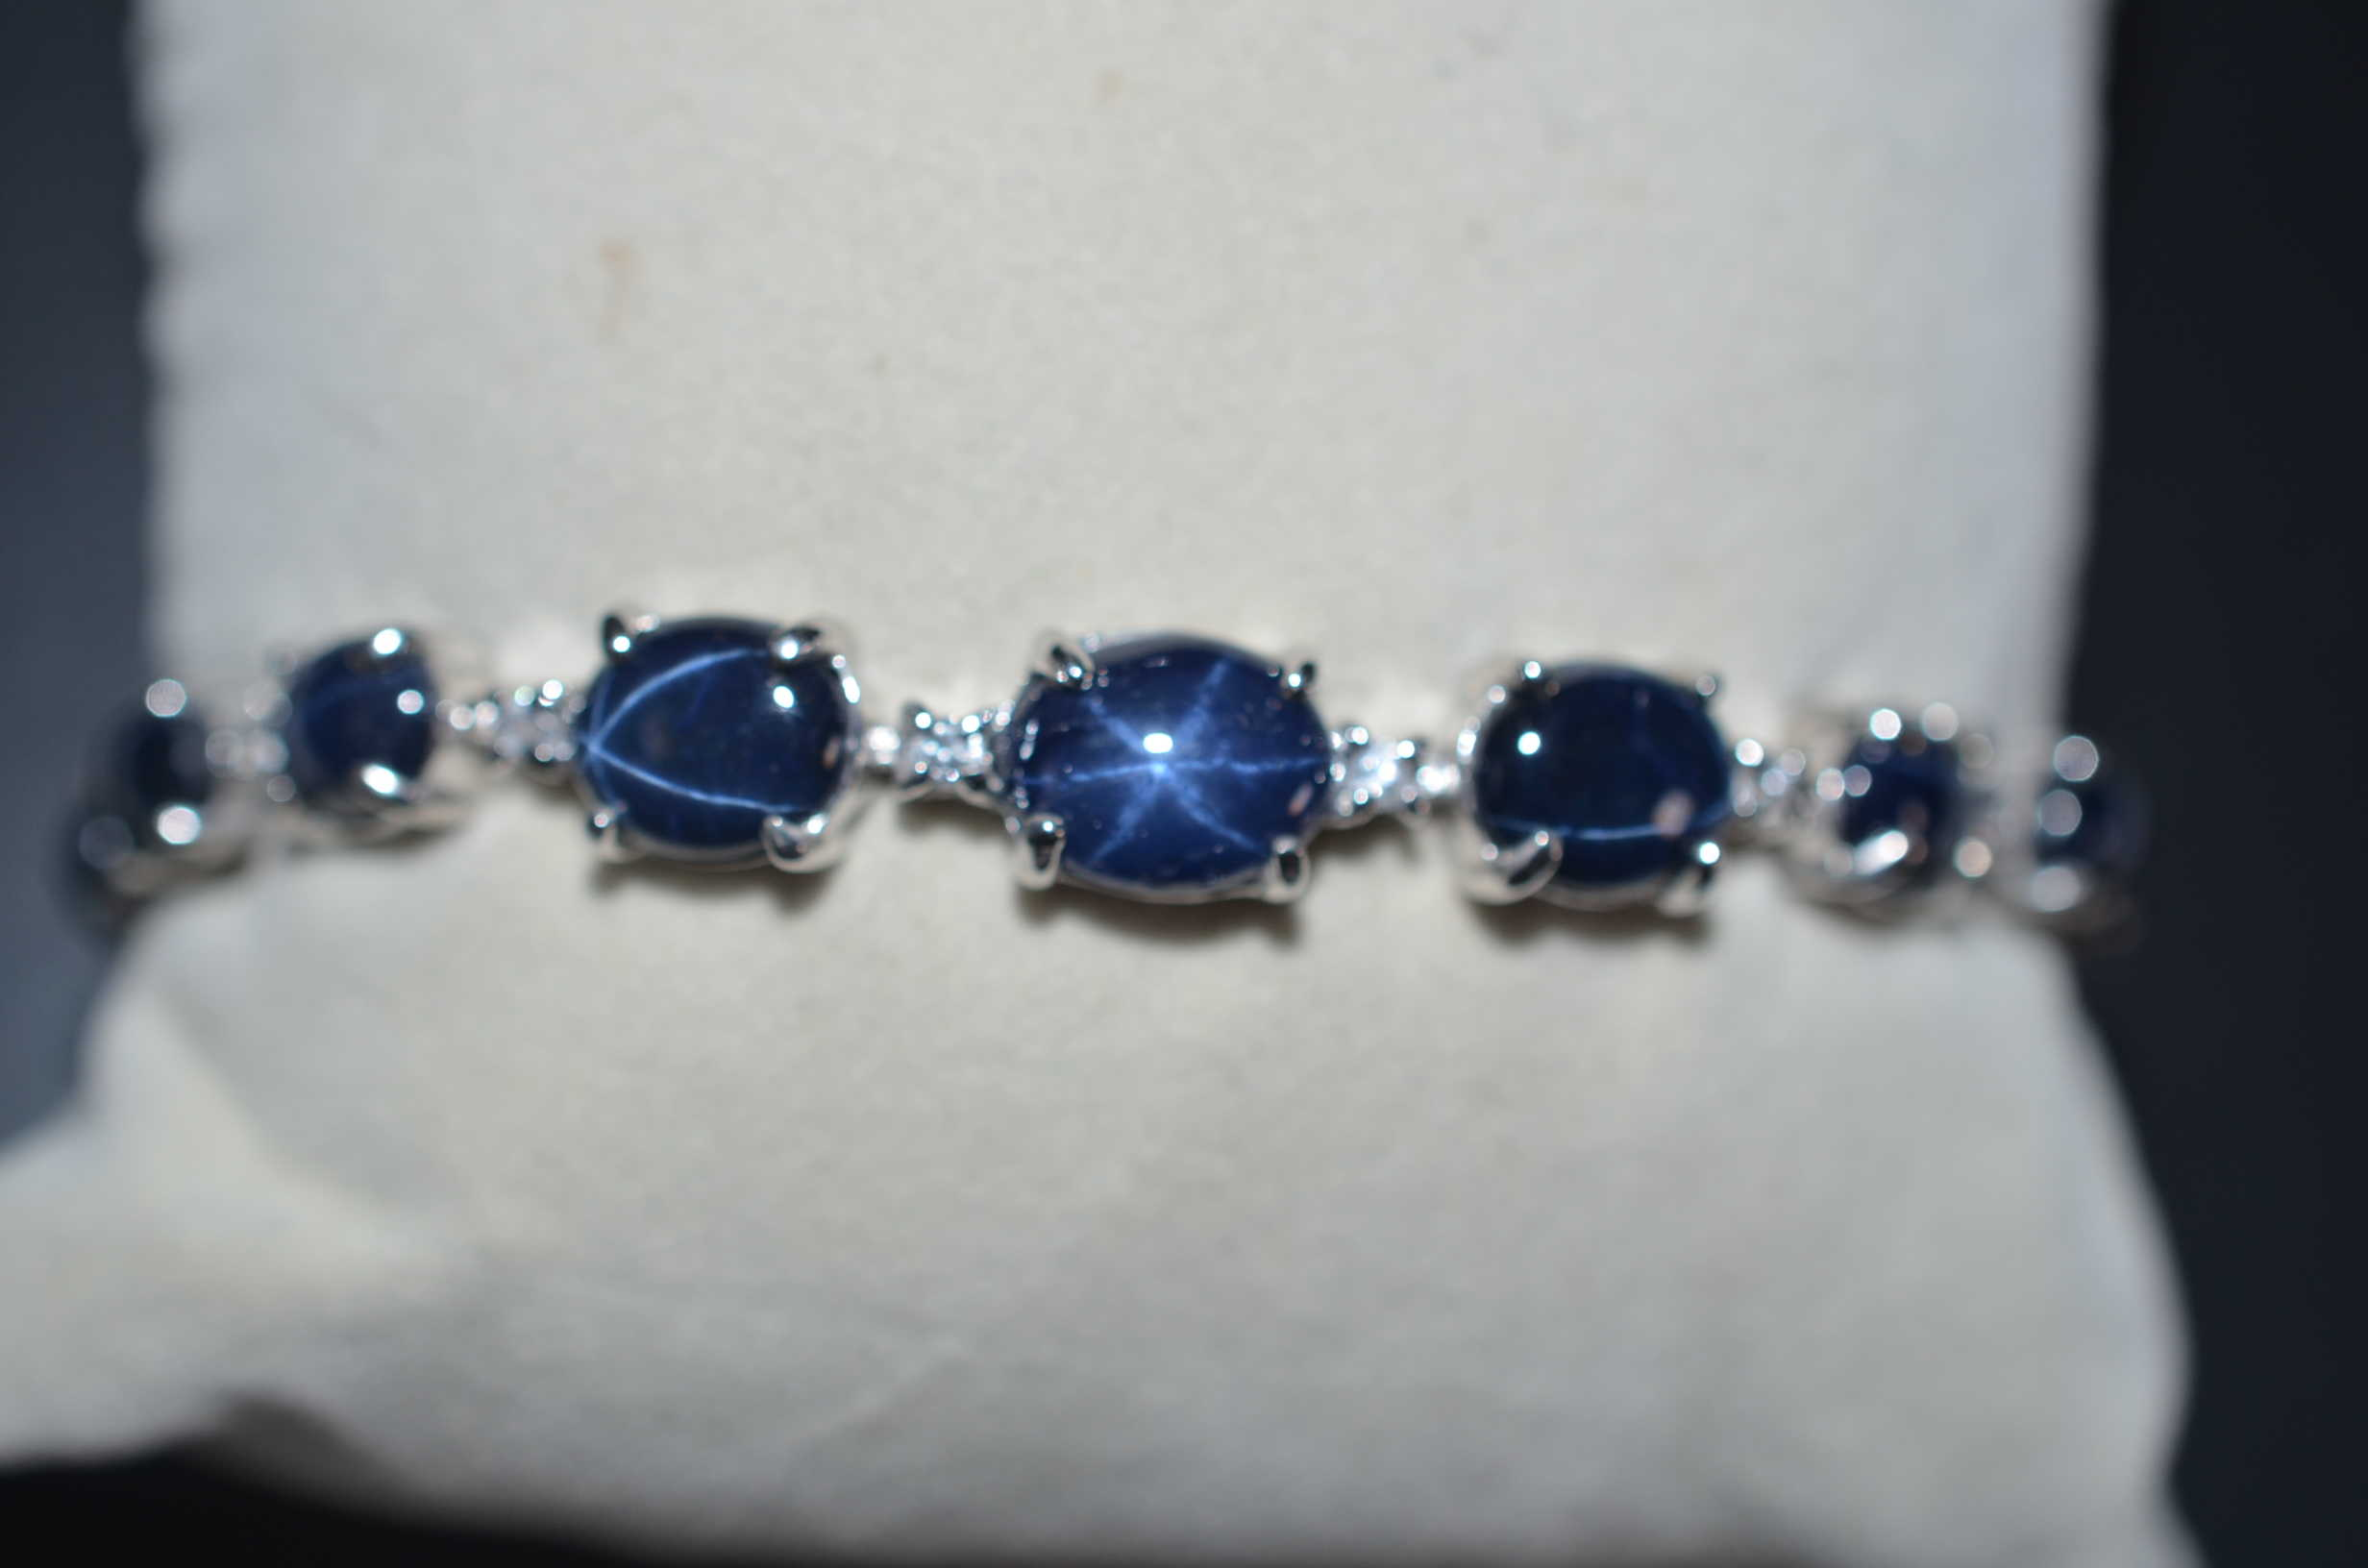 lot a jewelry tiffany nyr brace by details lotfinder and sapphire moonstone bracelet co